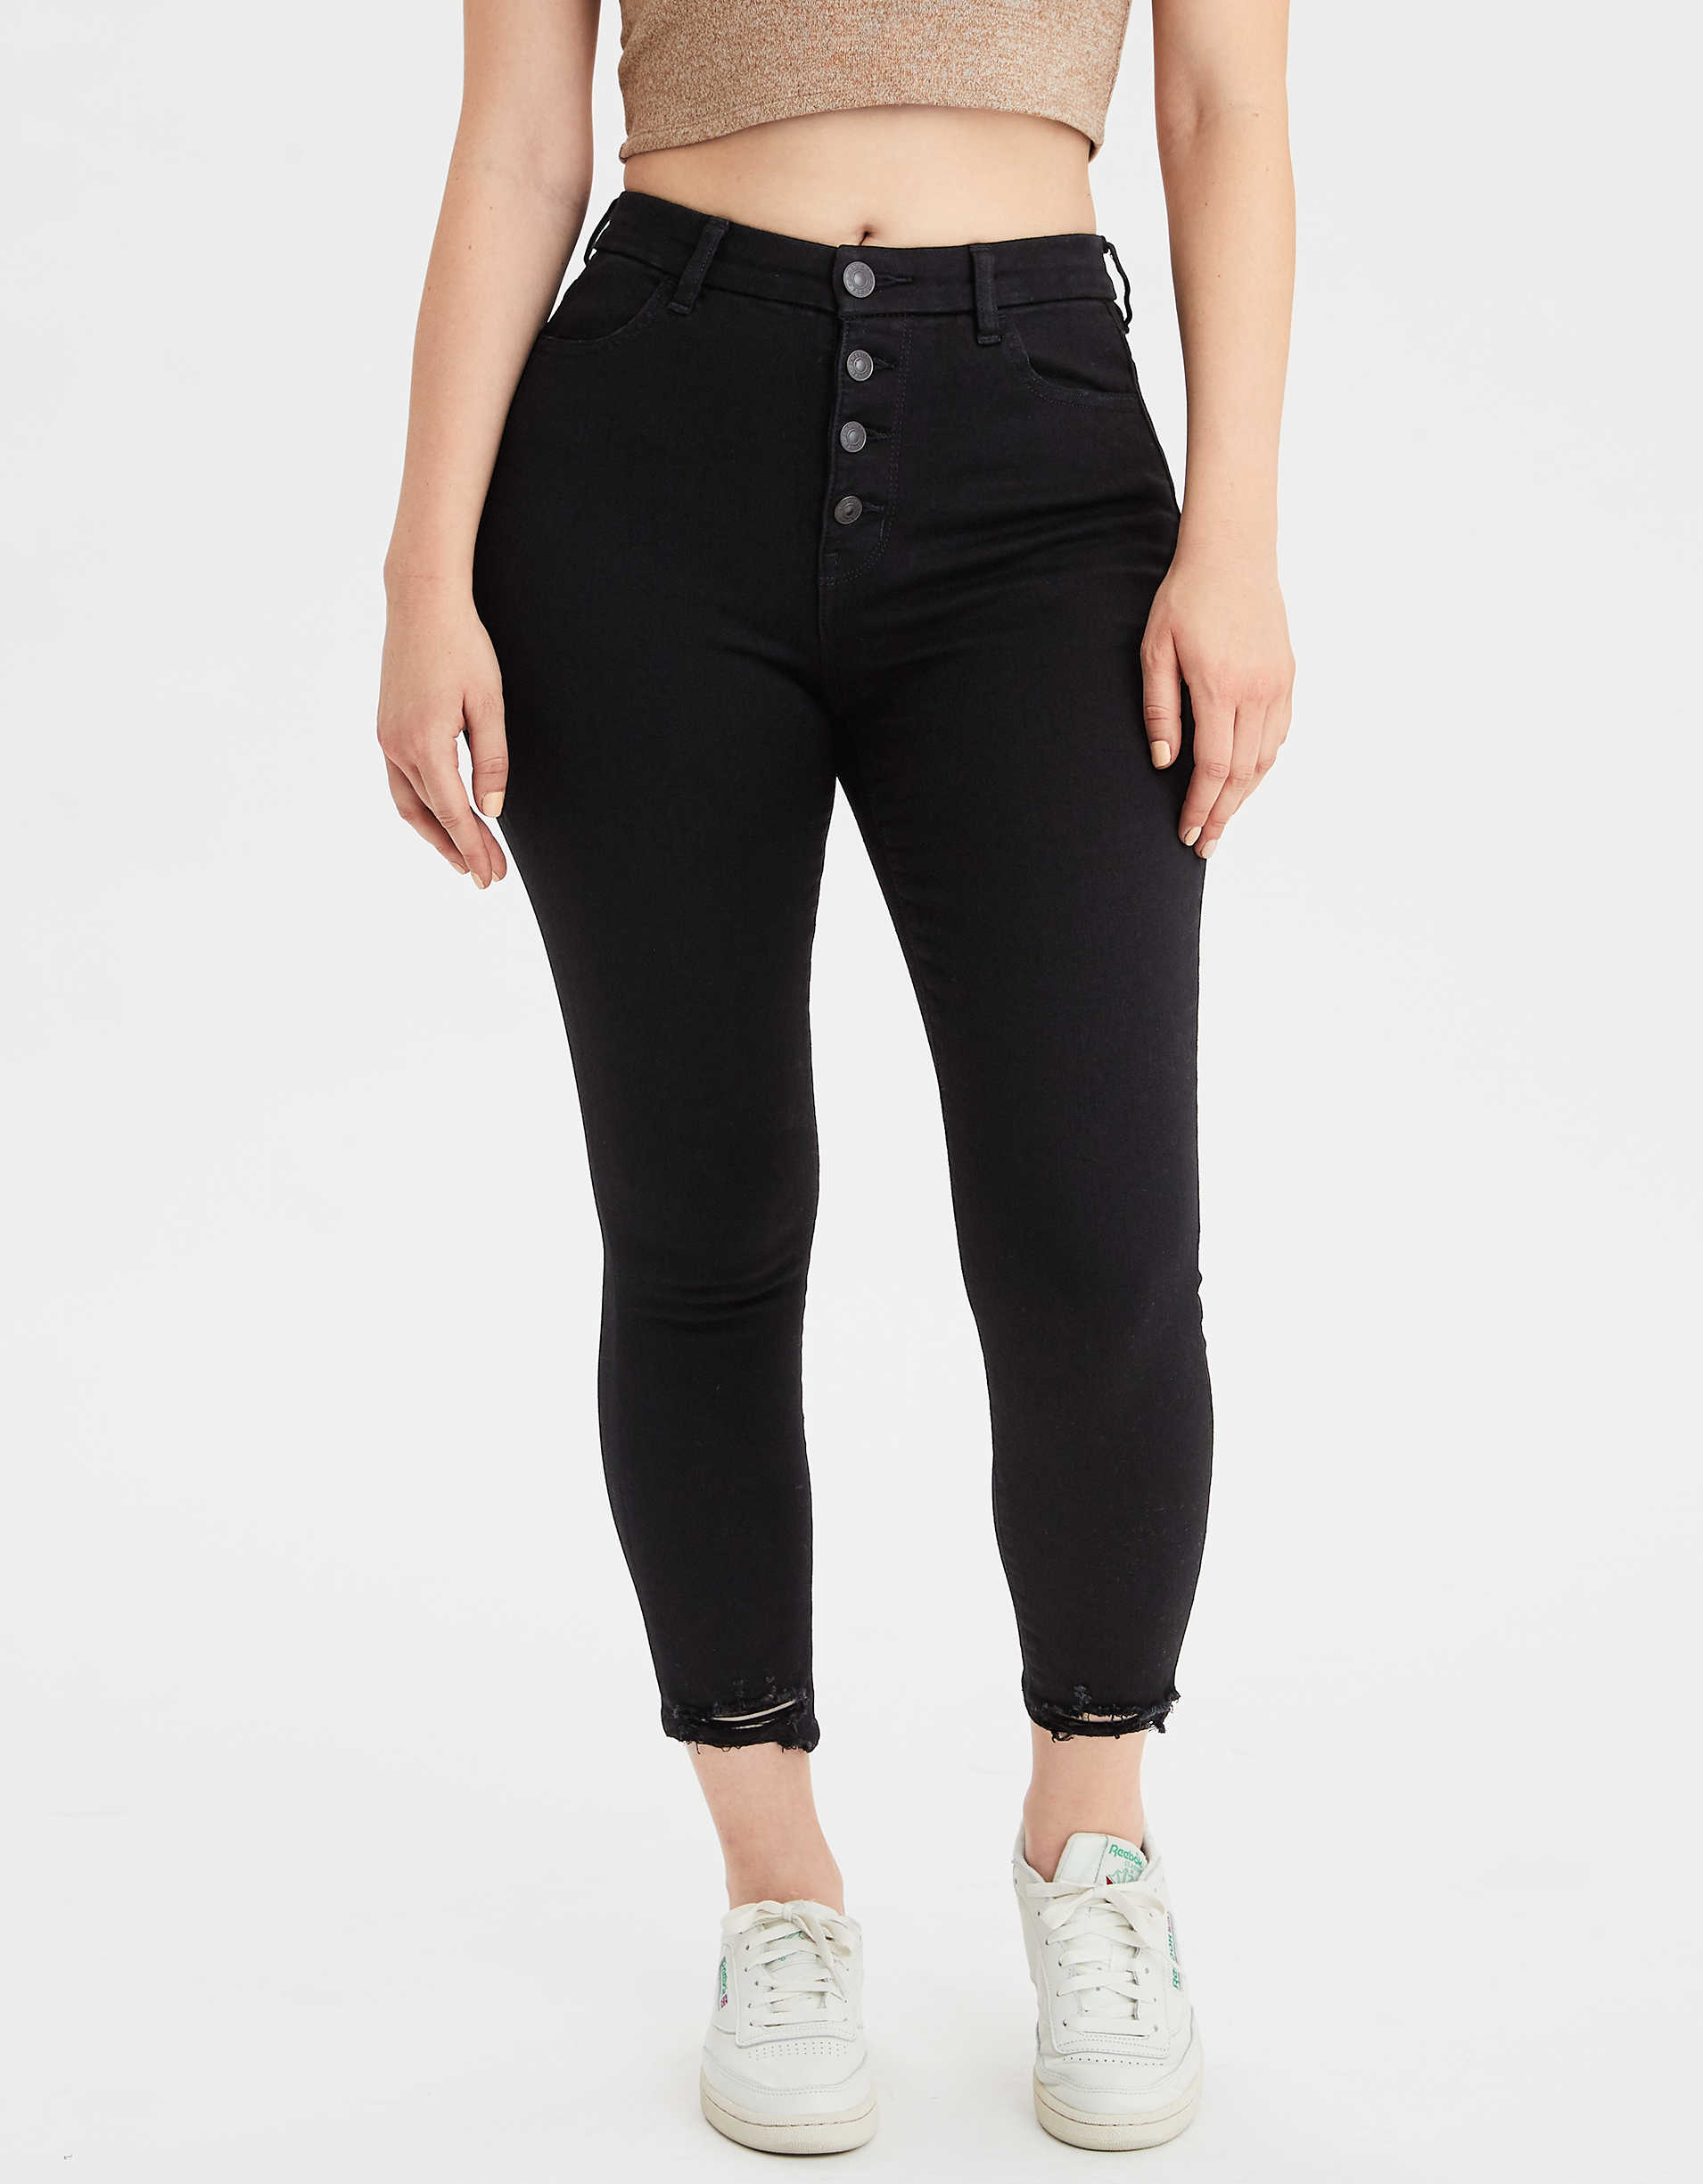 AE The Dream Jean Curvy High-Waisted Jegging Crop